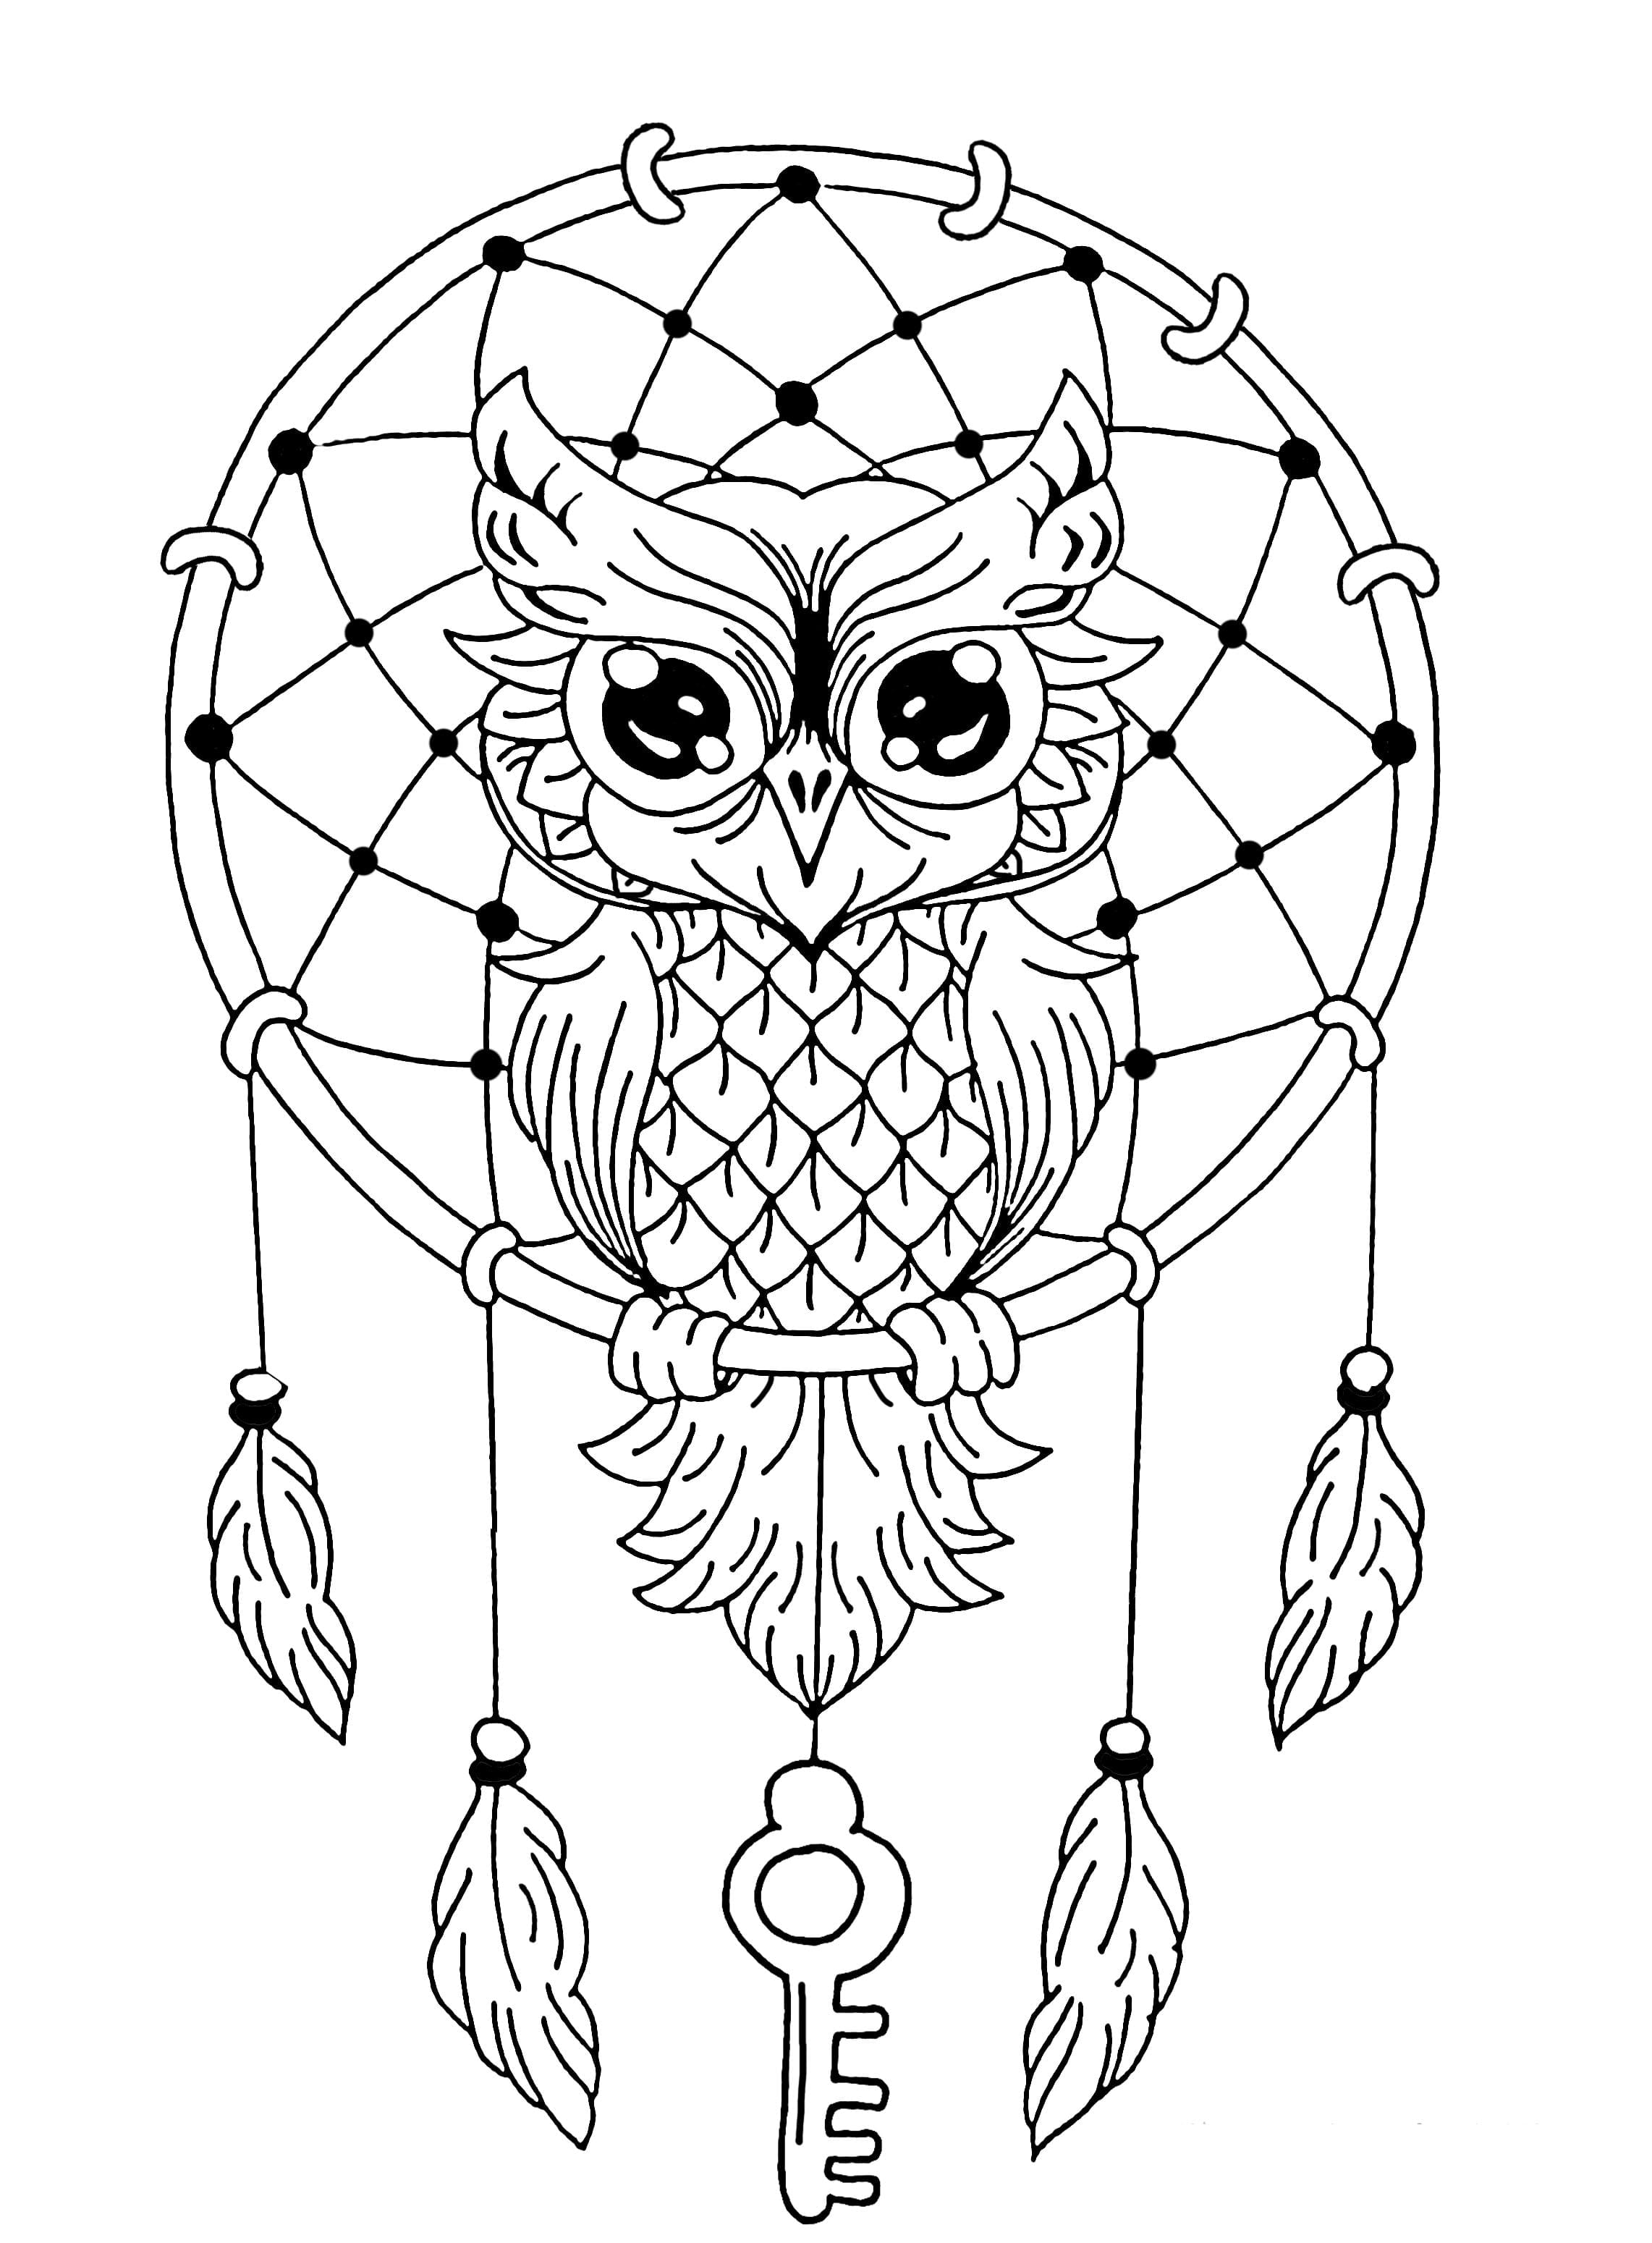 Dream Catcher Coloring Pages Gallery Free Books Inside